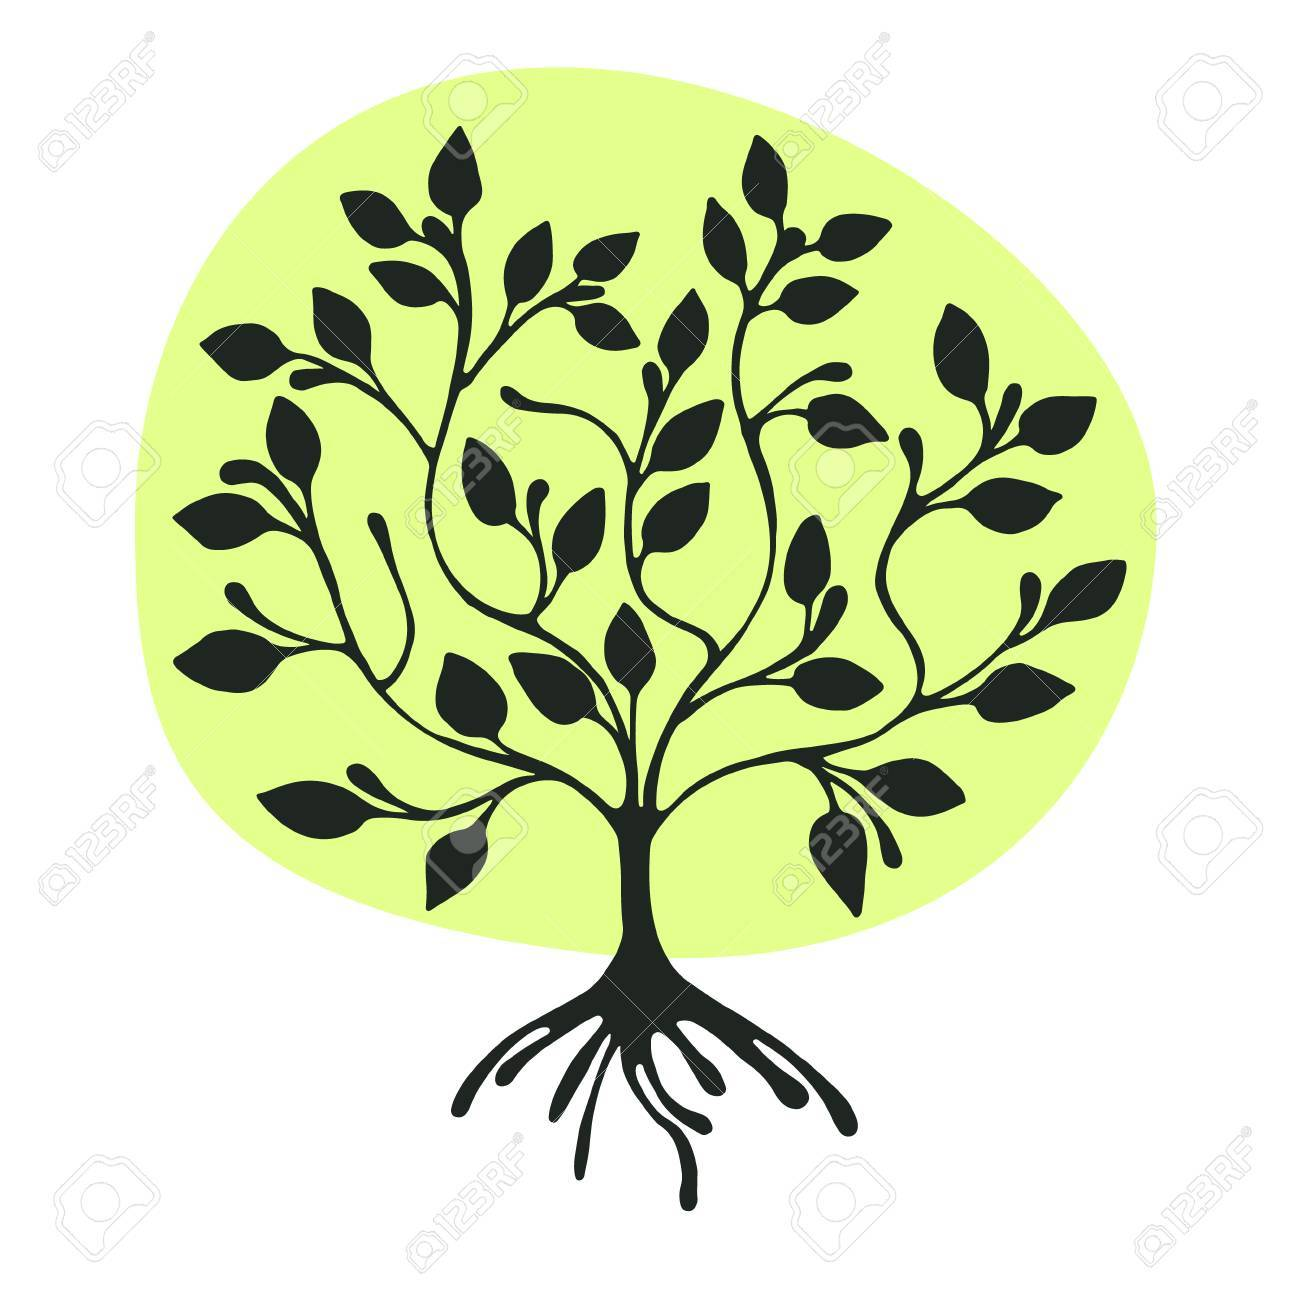 Stylized Tree Drawing at GetDrawings.com | Free for personal use ...